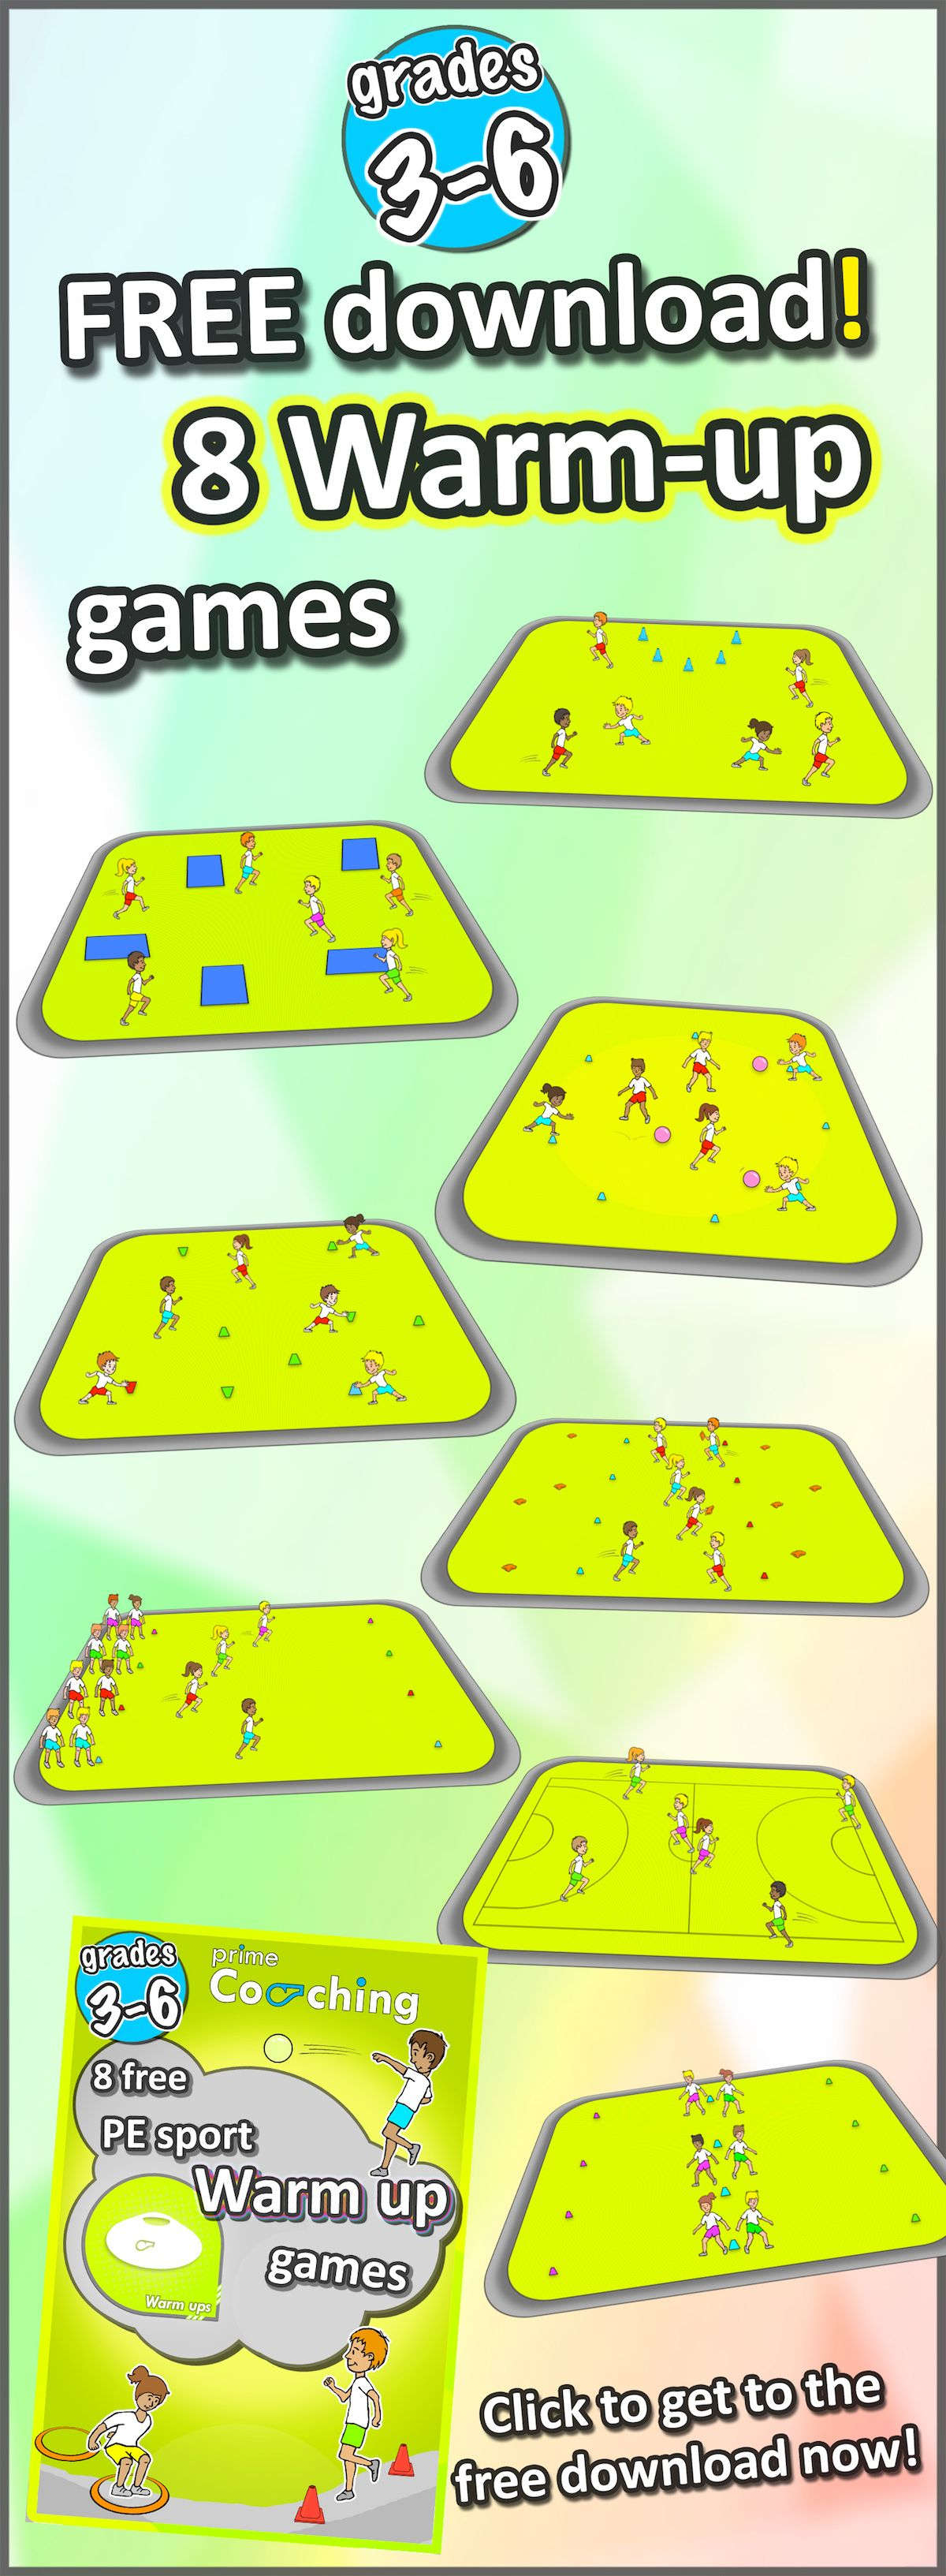 Try Out These Awesome Warm Up Pe Games In Your Next Sport Class Perfect Activities For Grades 3